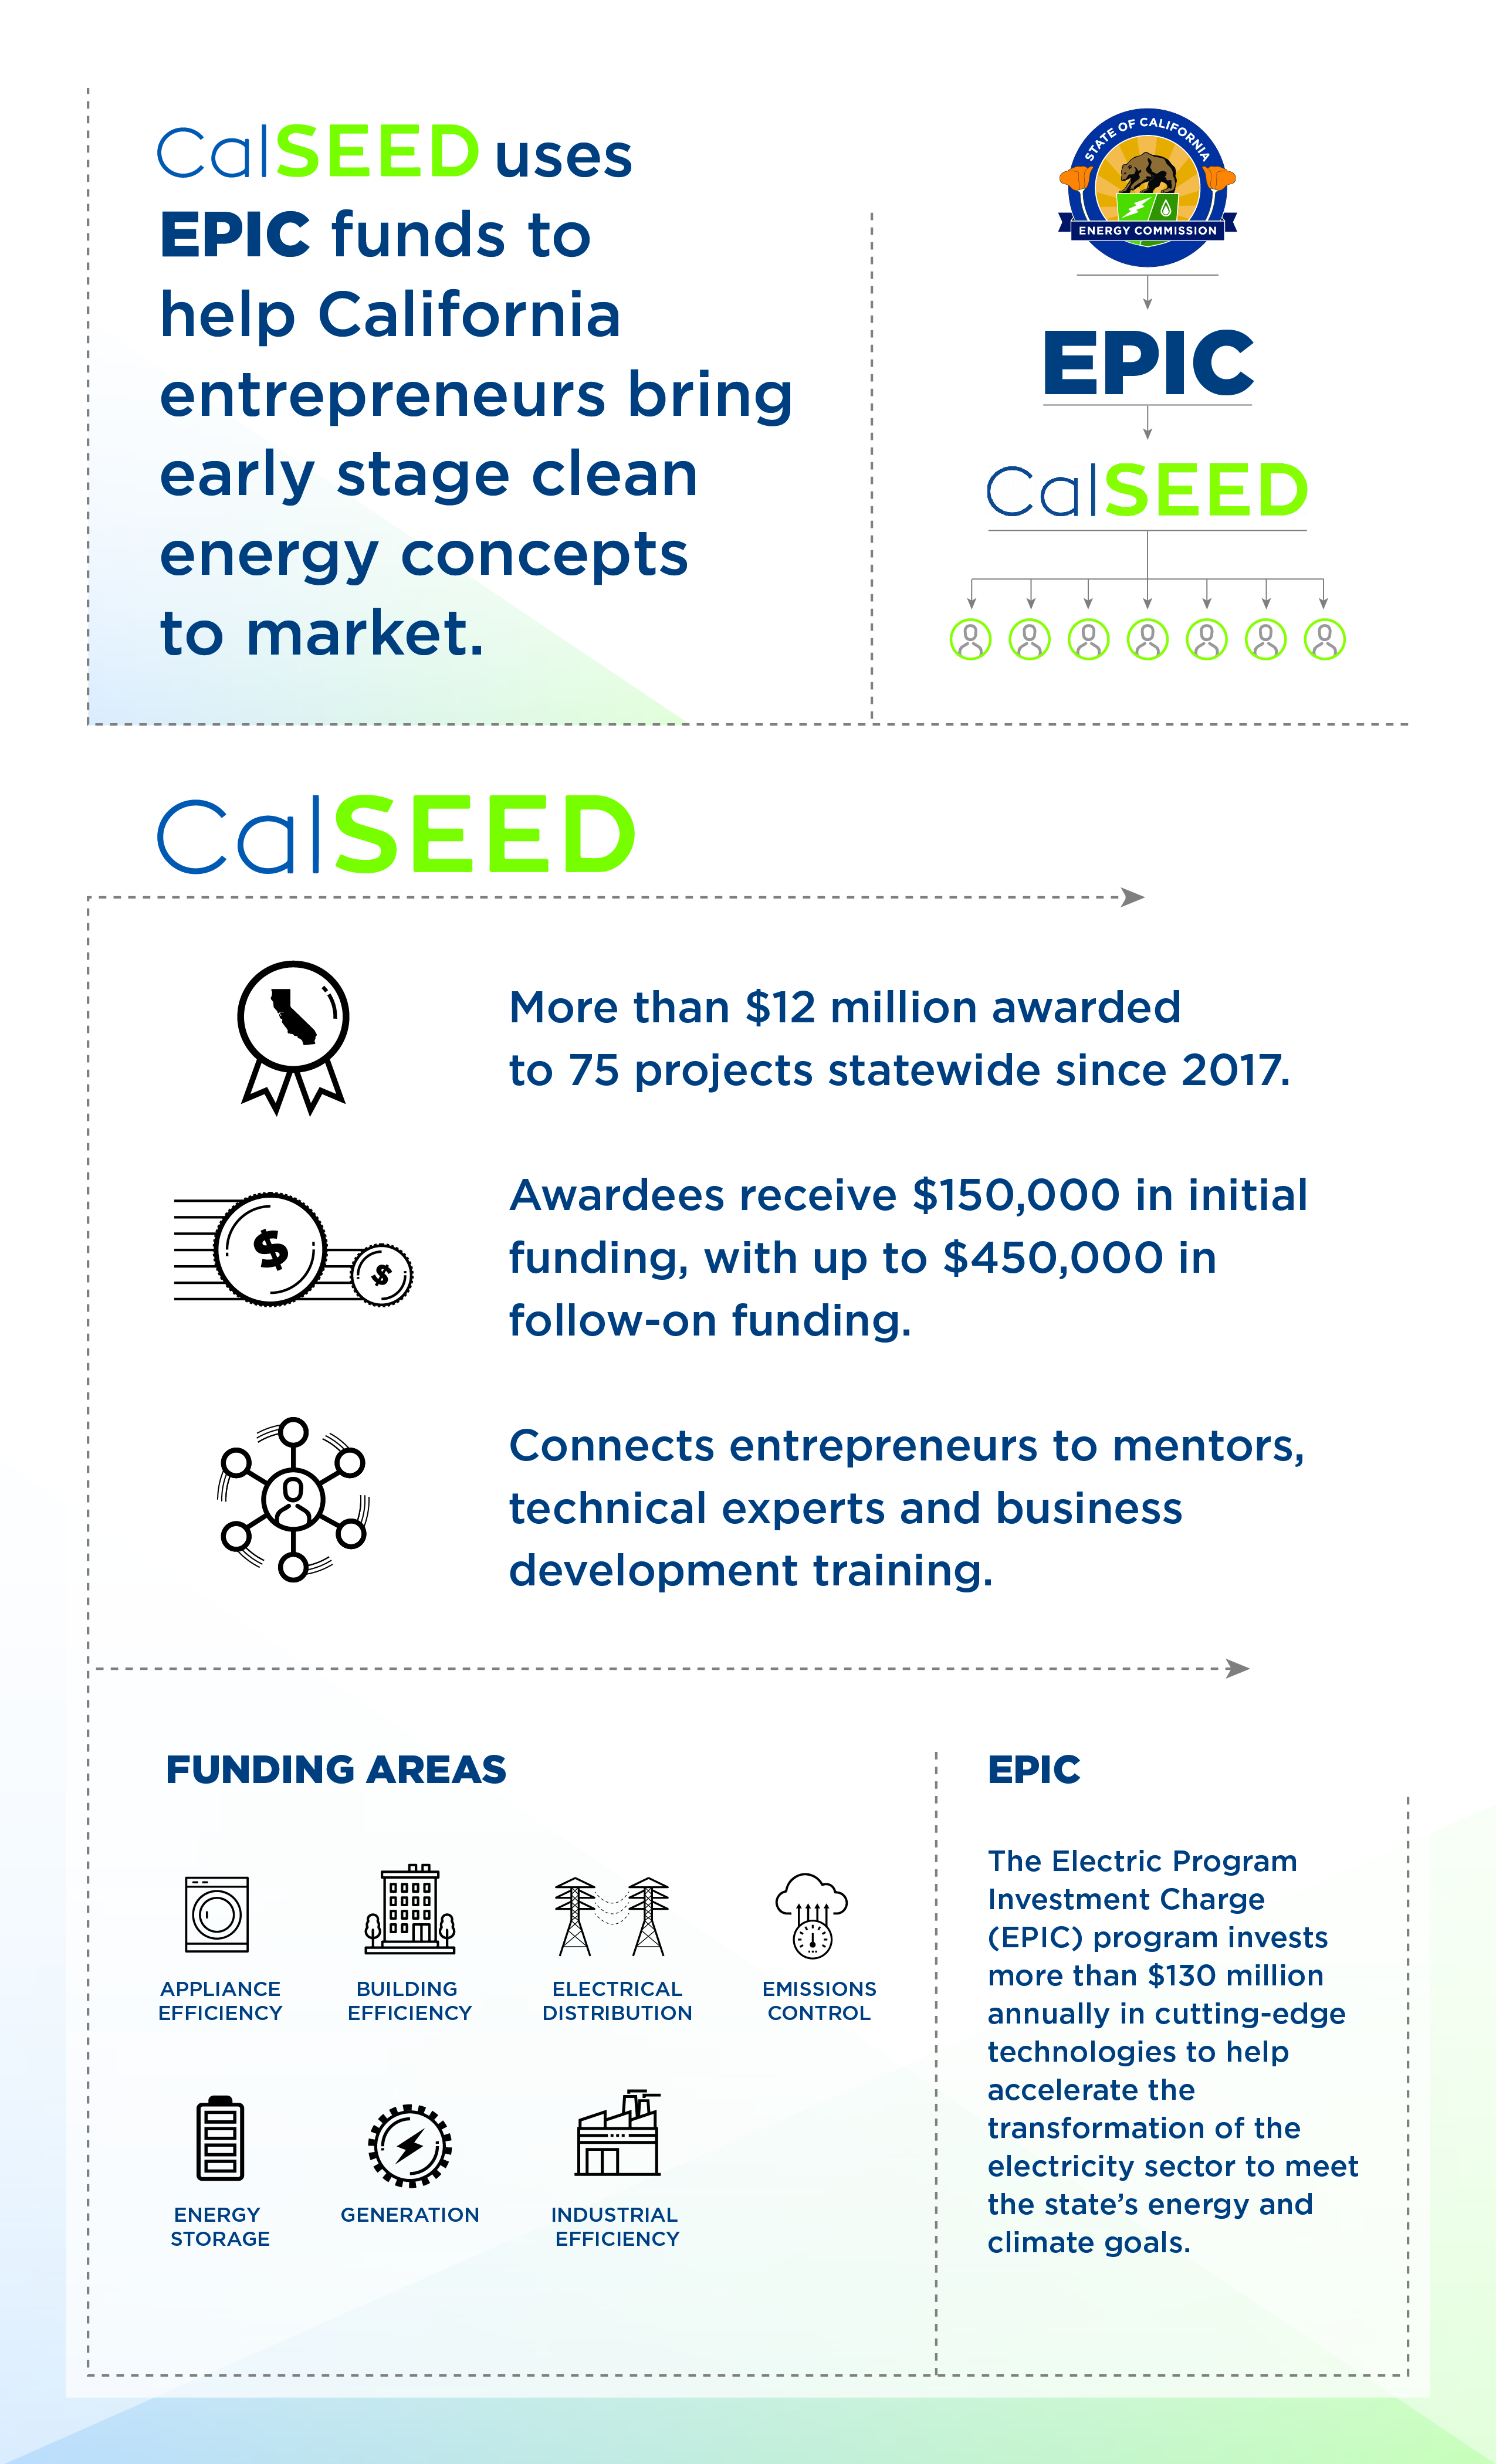 raphic on how CalSEED uses EPIC funds to help California entrepreneurs bring early stage clean energy concepts to market.